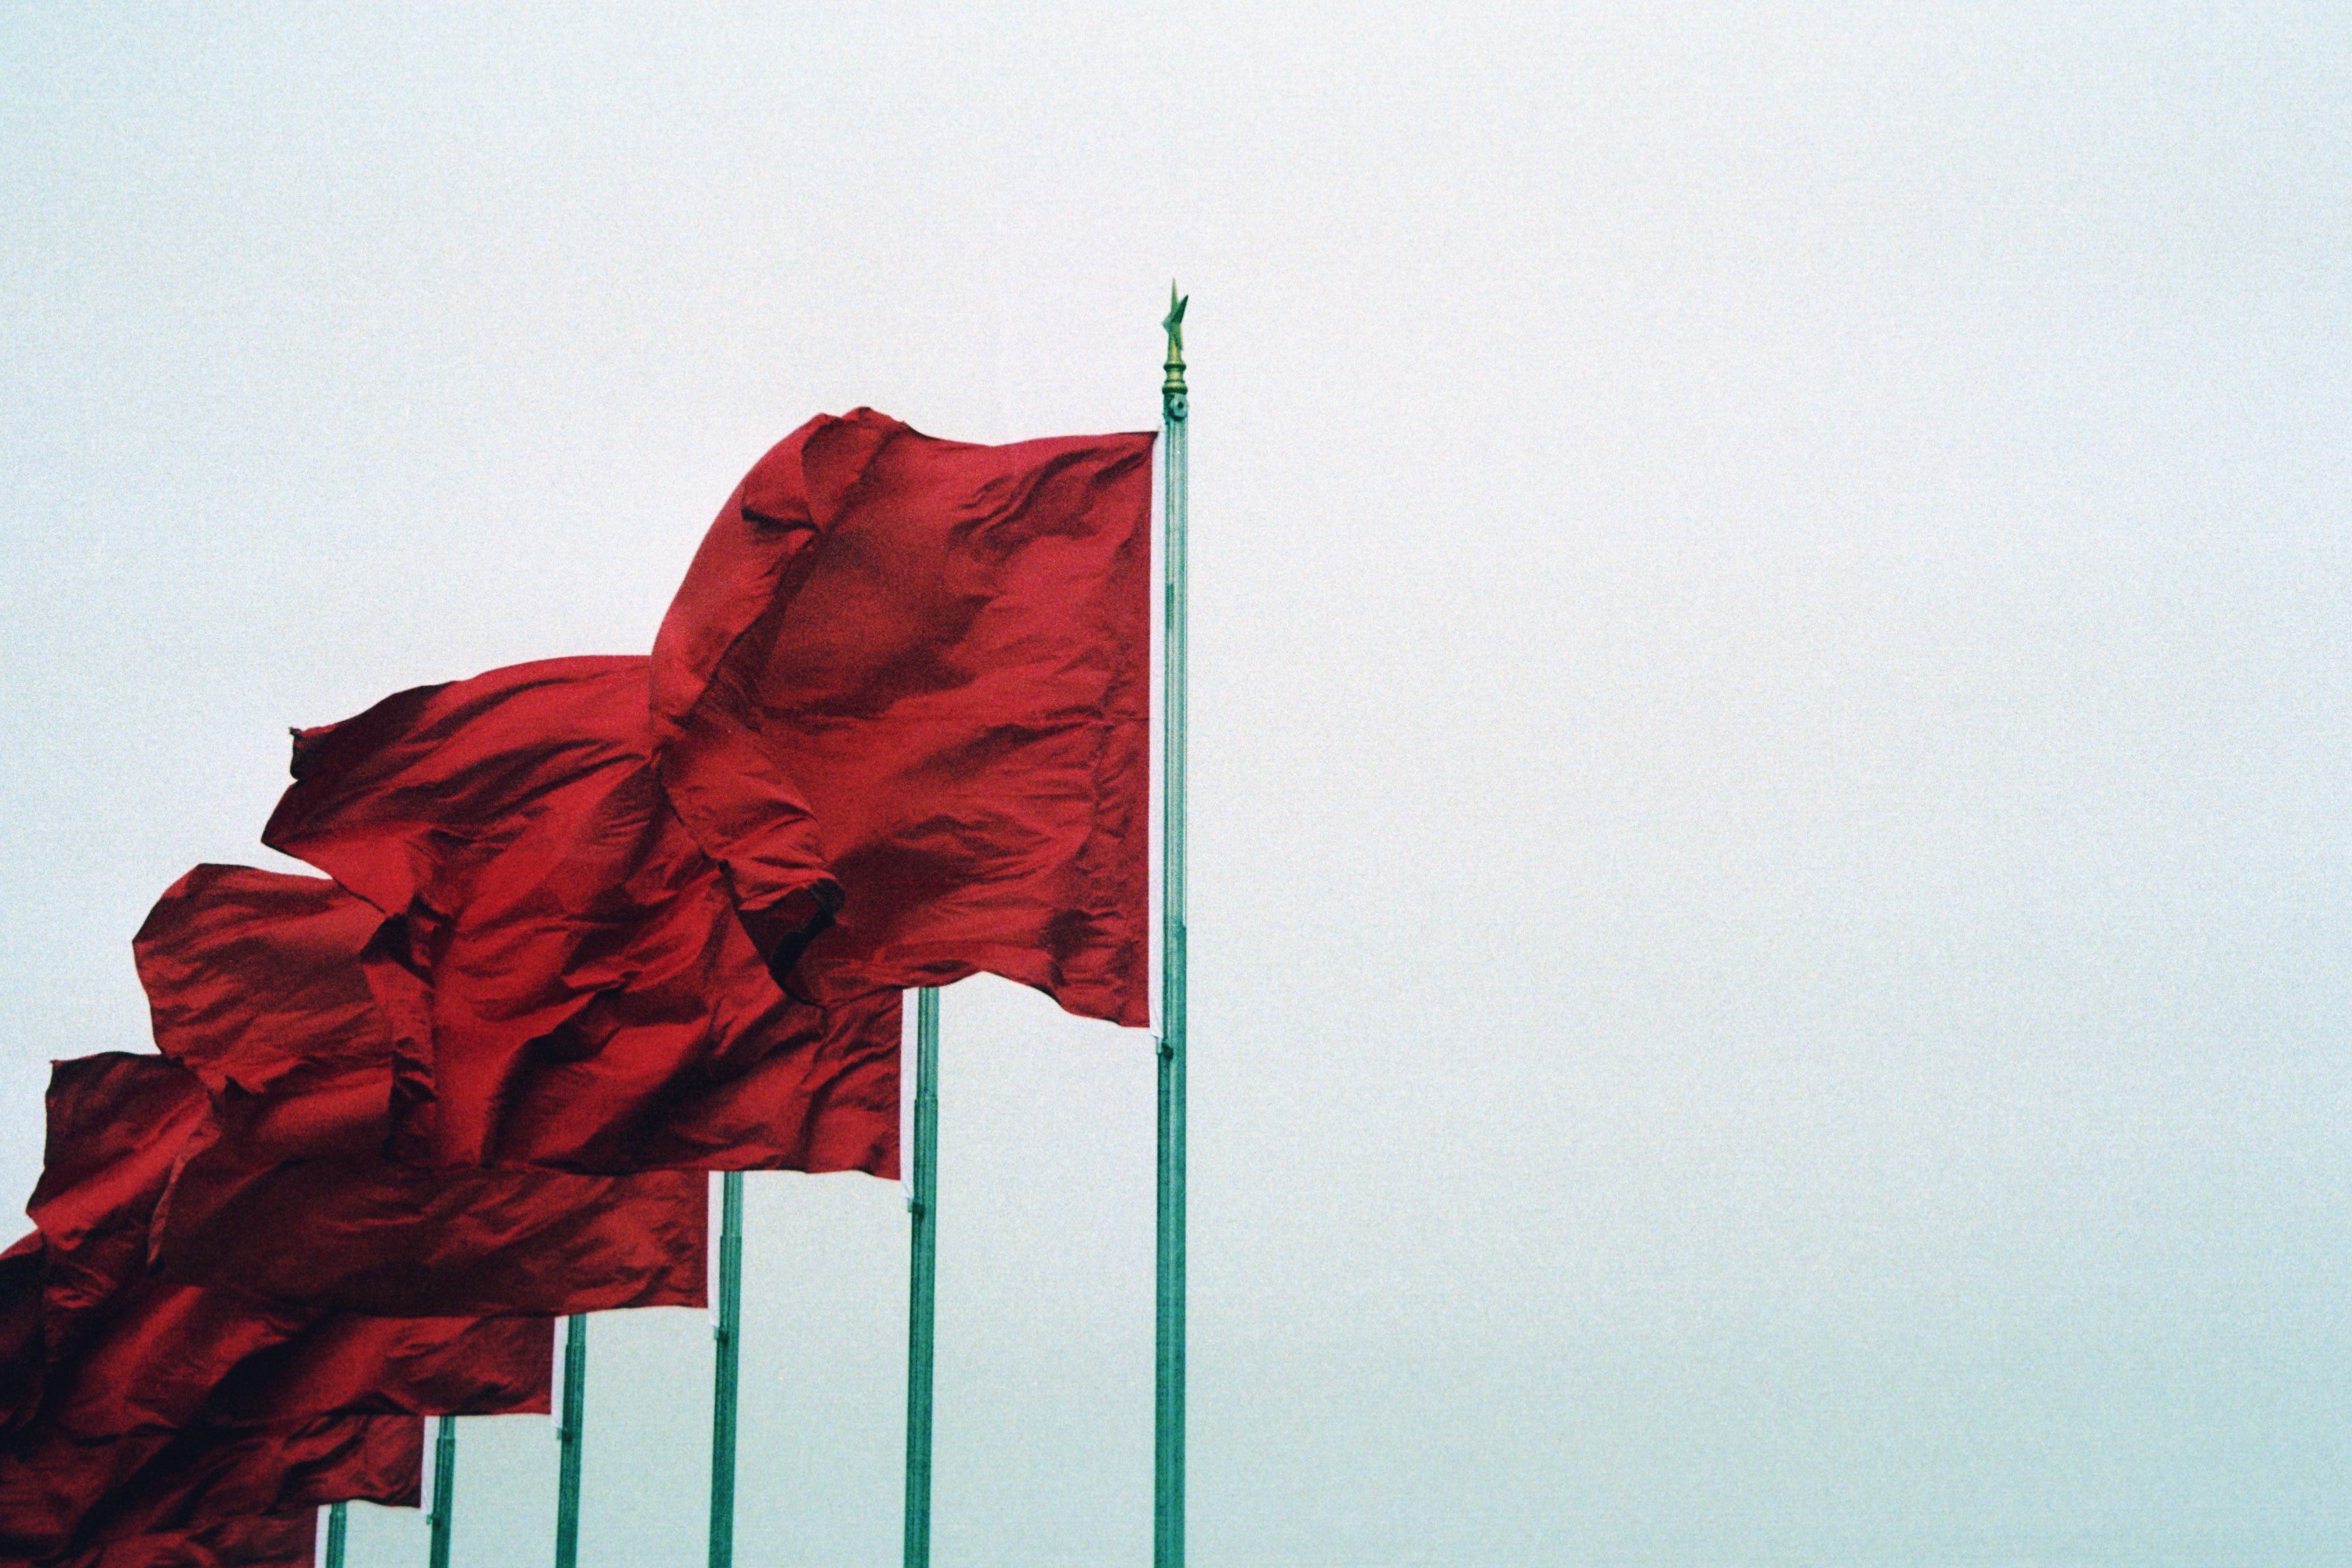 Red flags flying in Tiananmen Square